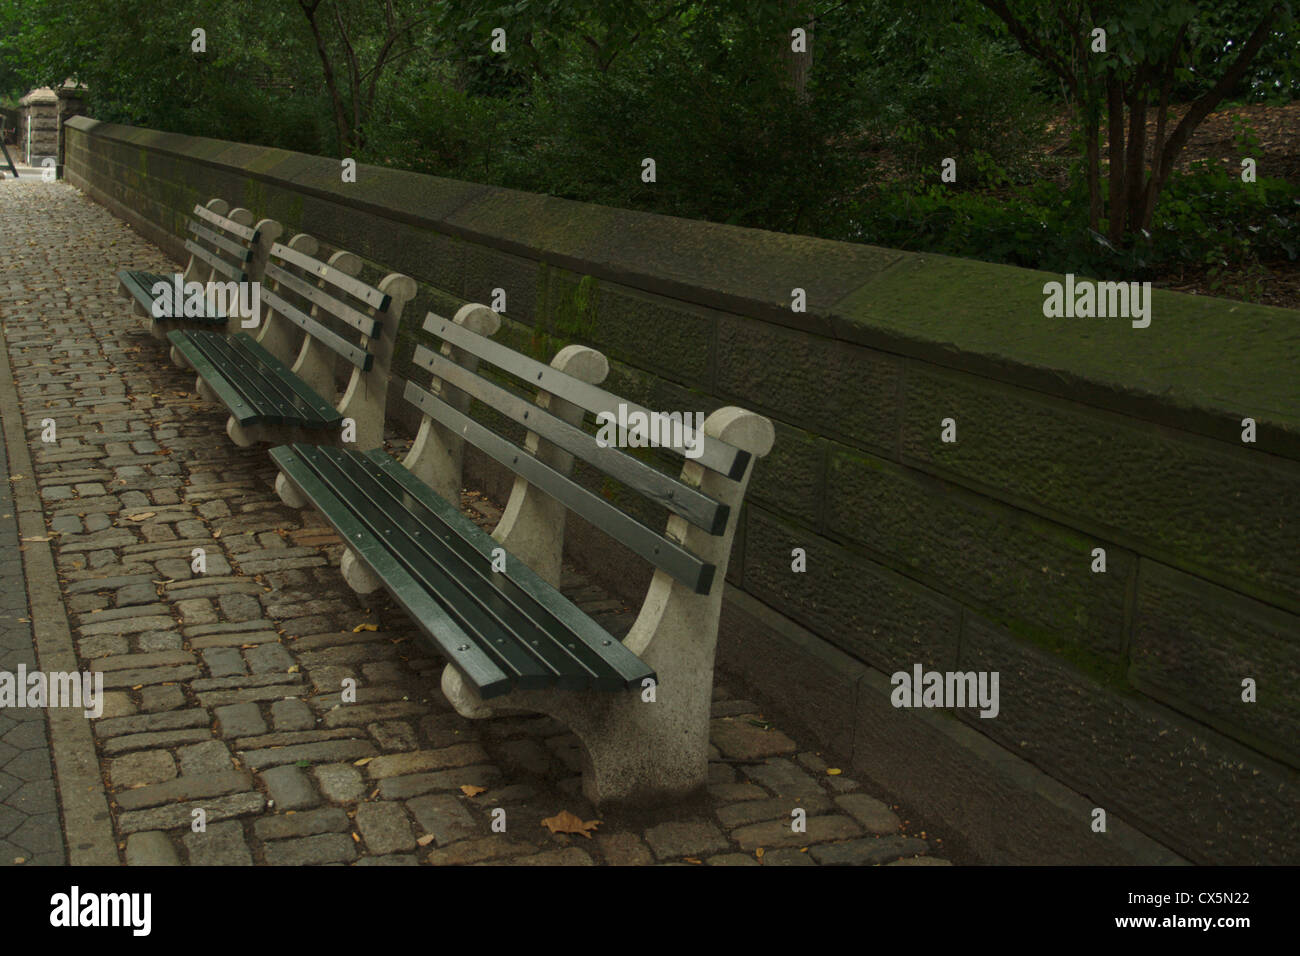 A Row Of Benches Along Central Park On The West Side In New York